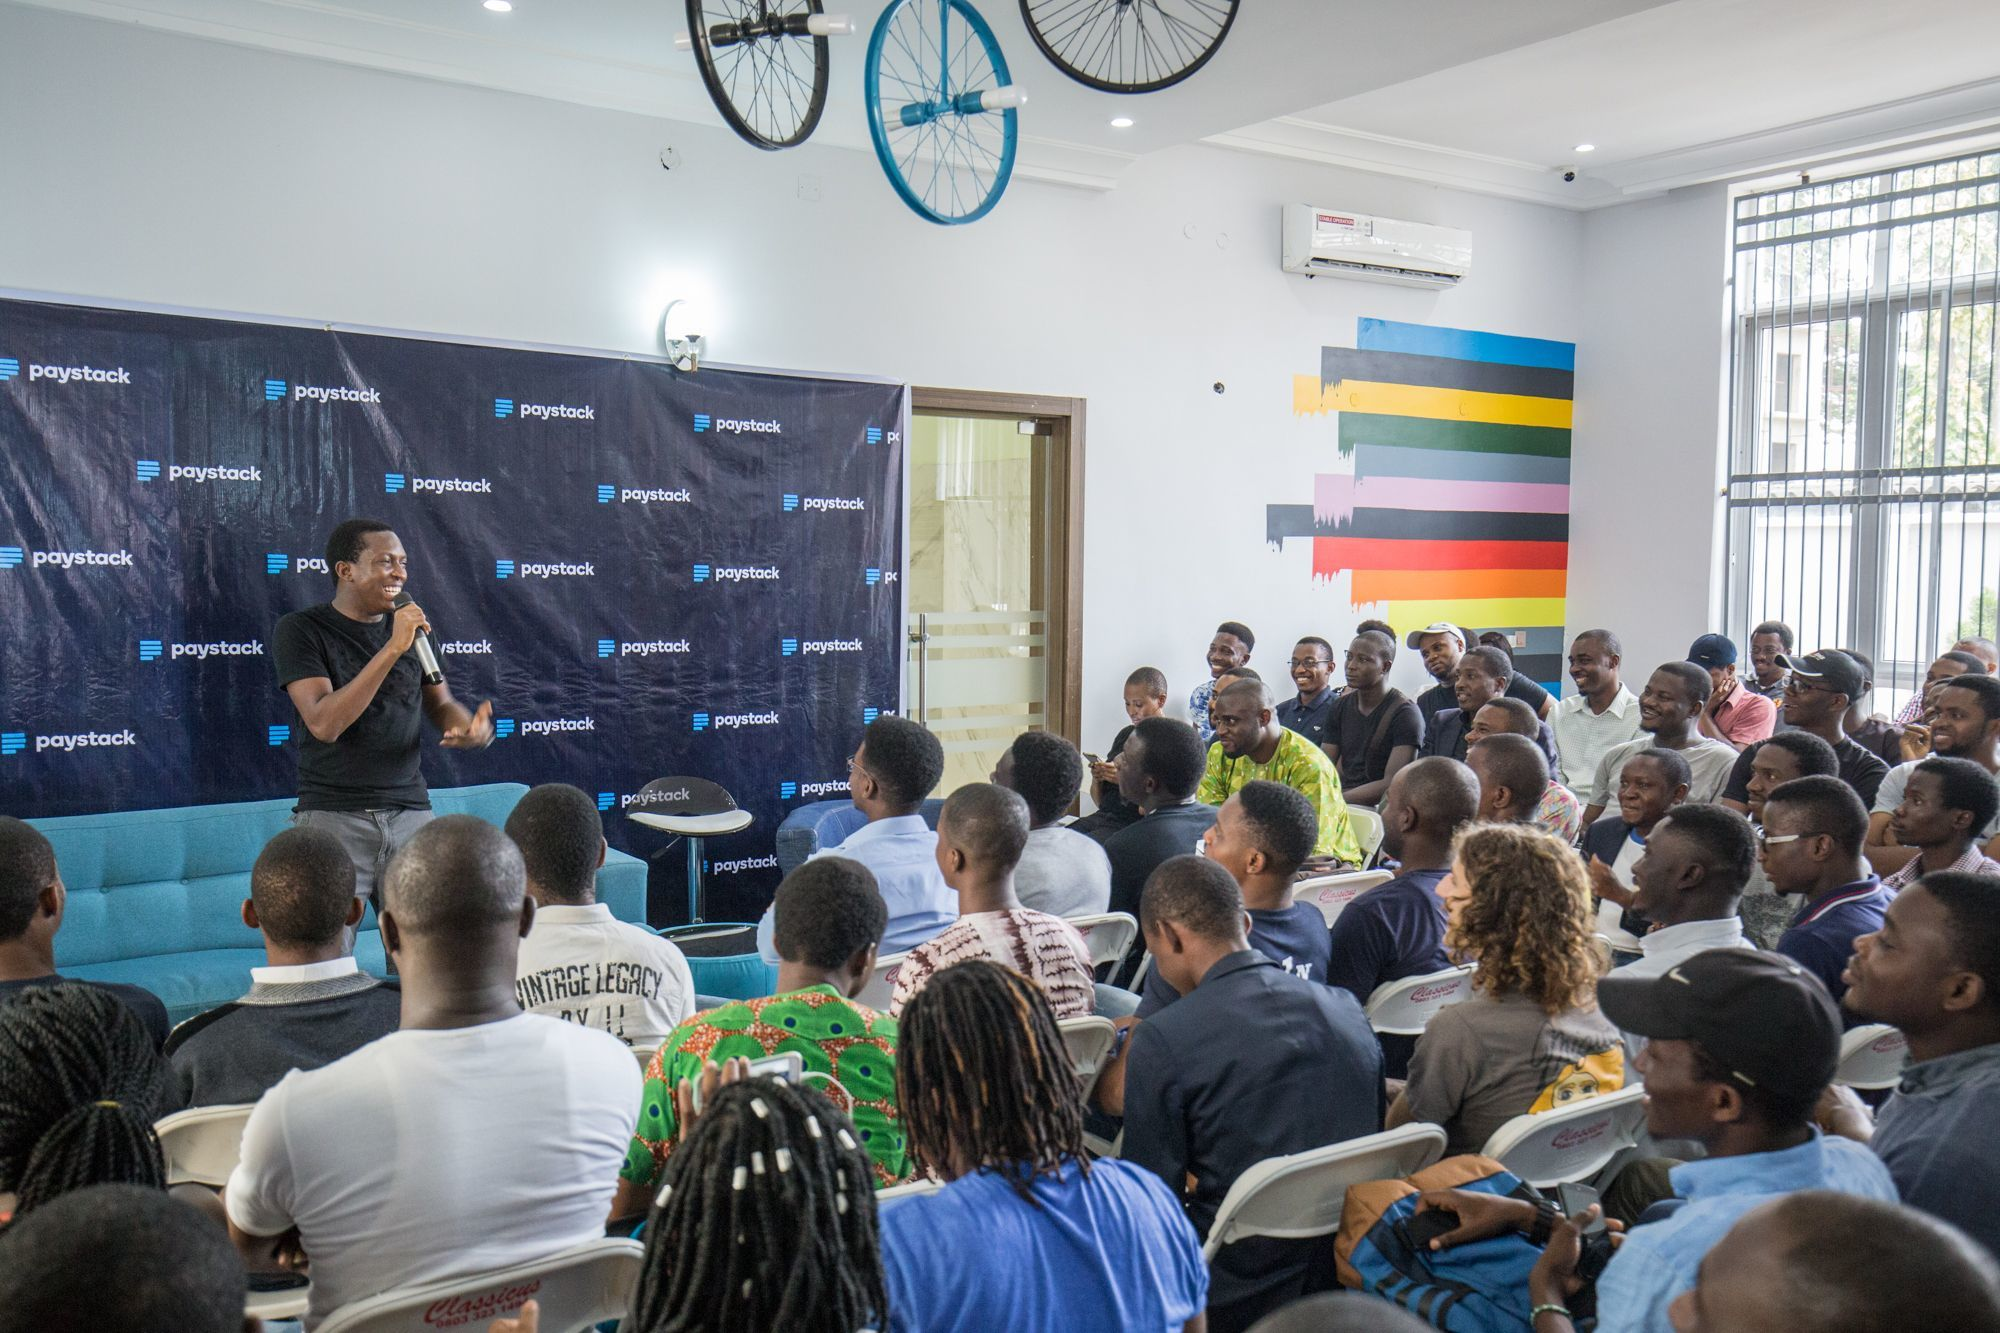 Scene at the first Y Combinator Lagos Meetup, hosted at Paystack HQ